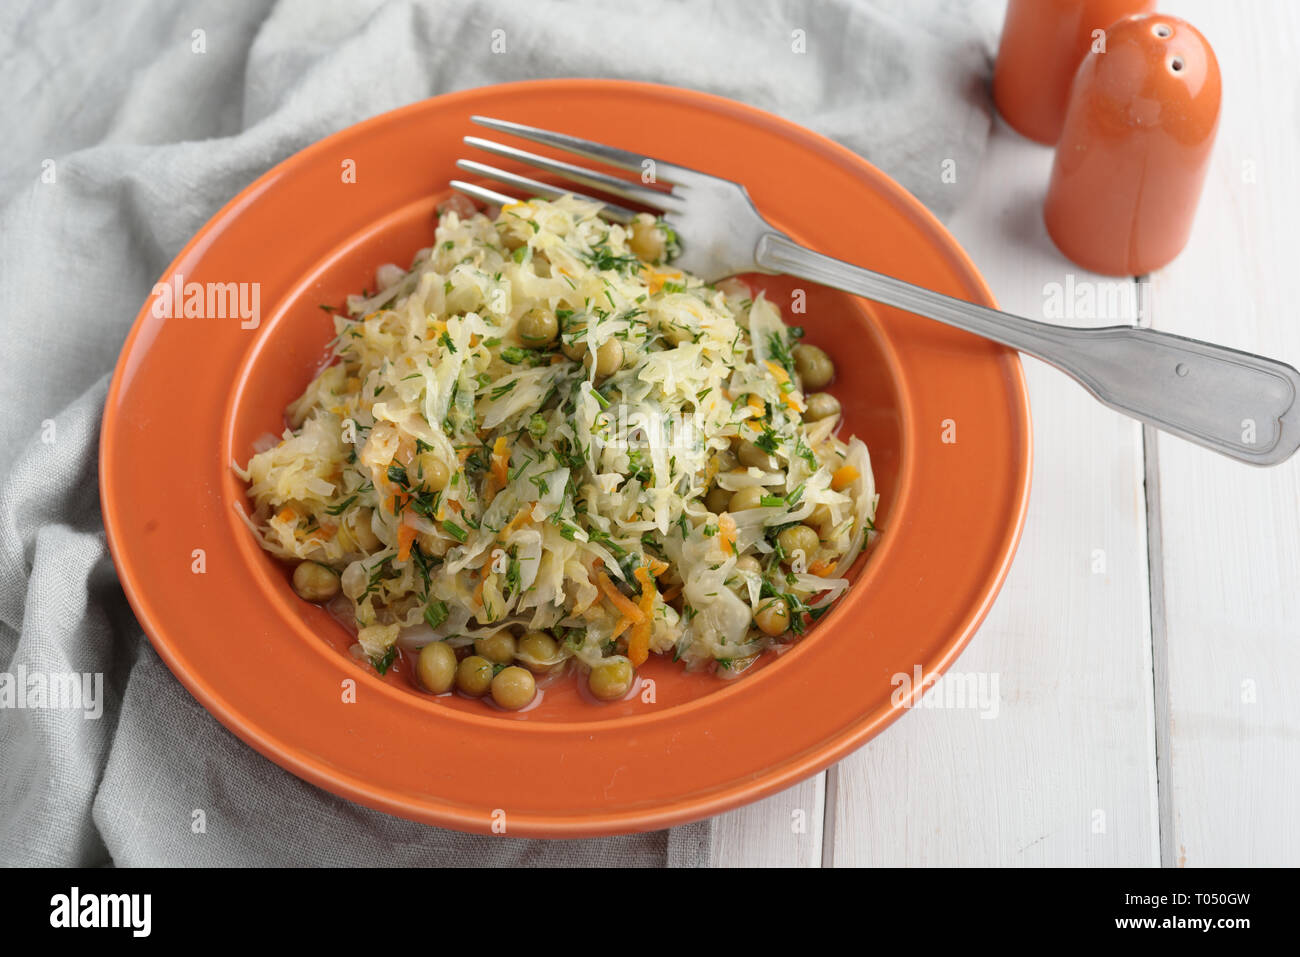 Braised cabbage with green pea, carrot, onion, and dill - Stock Image